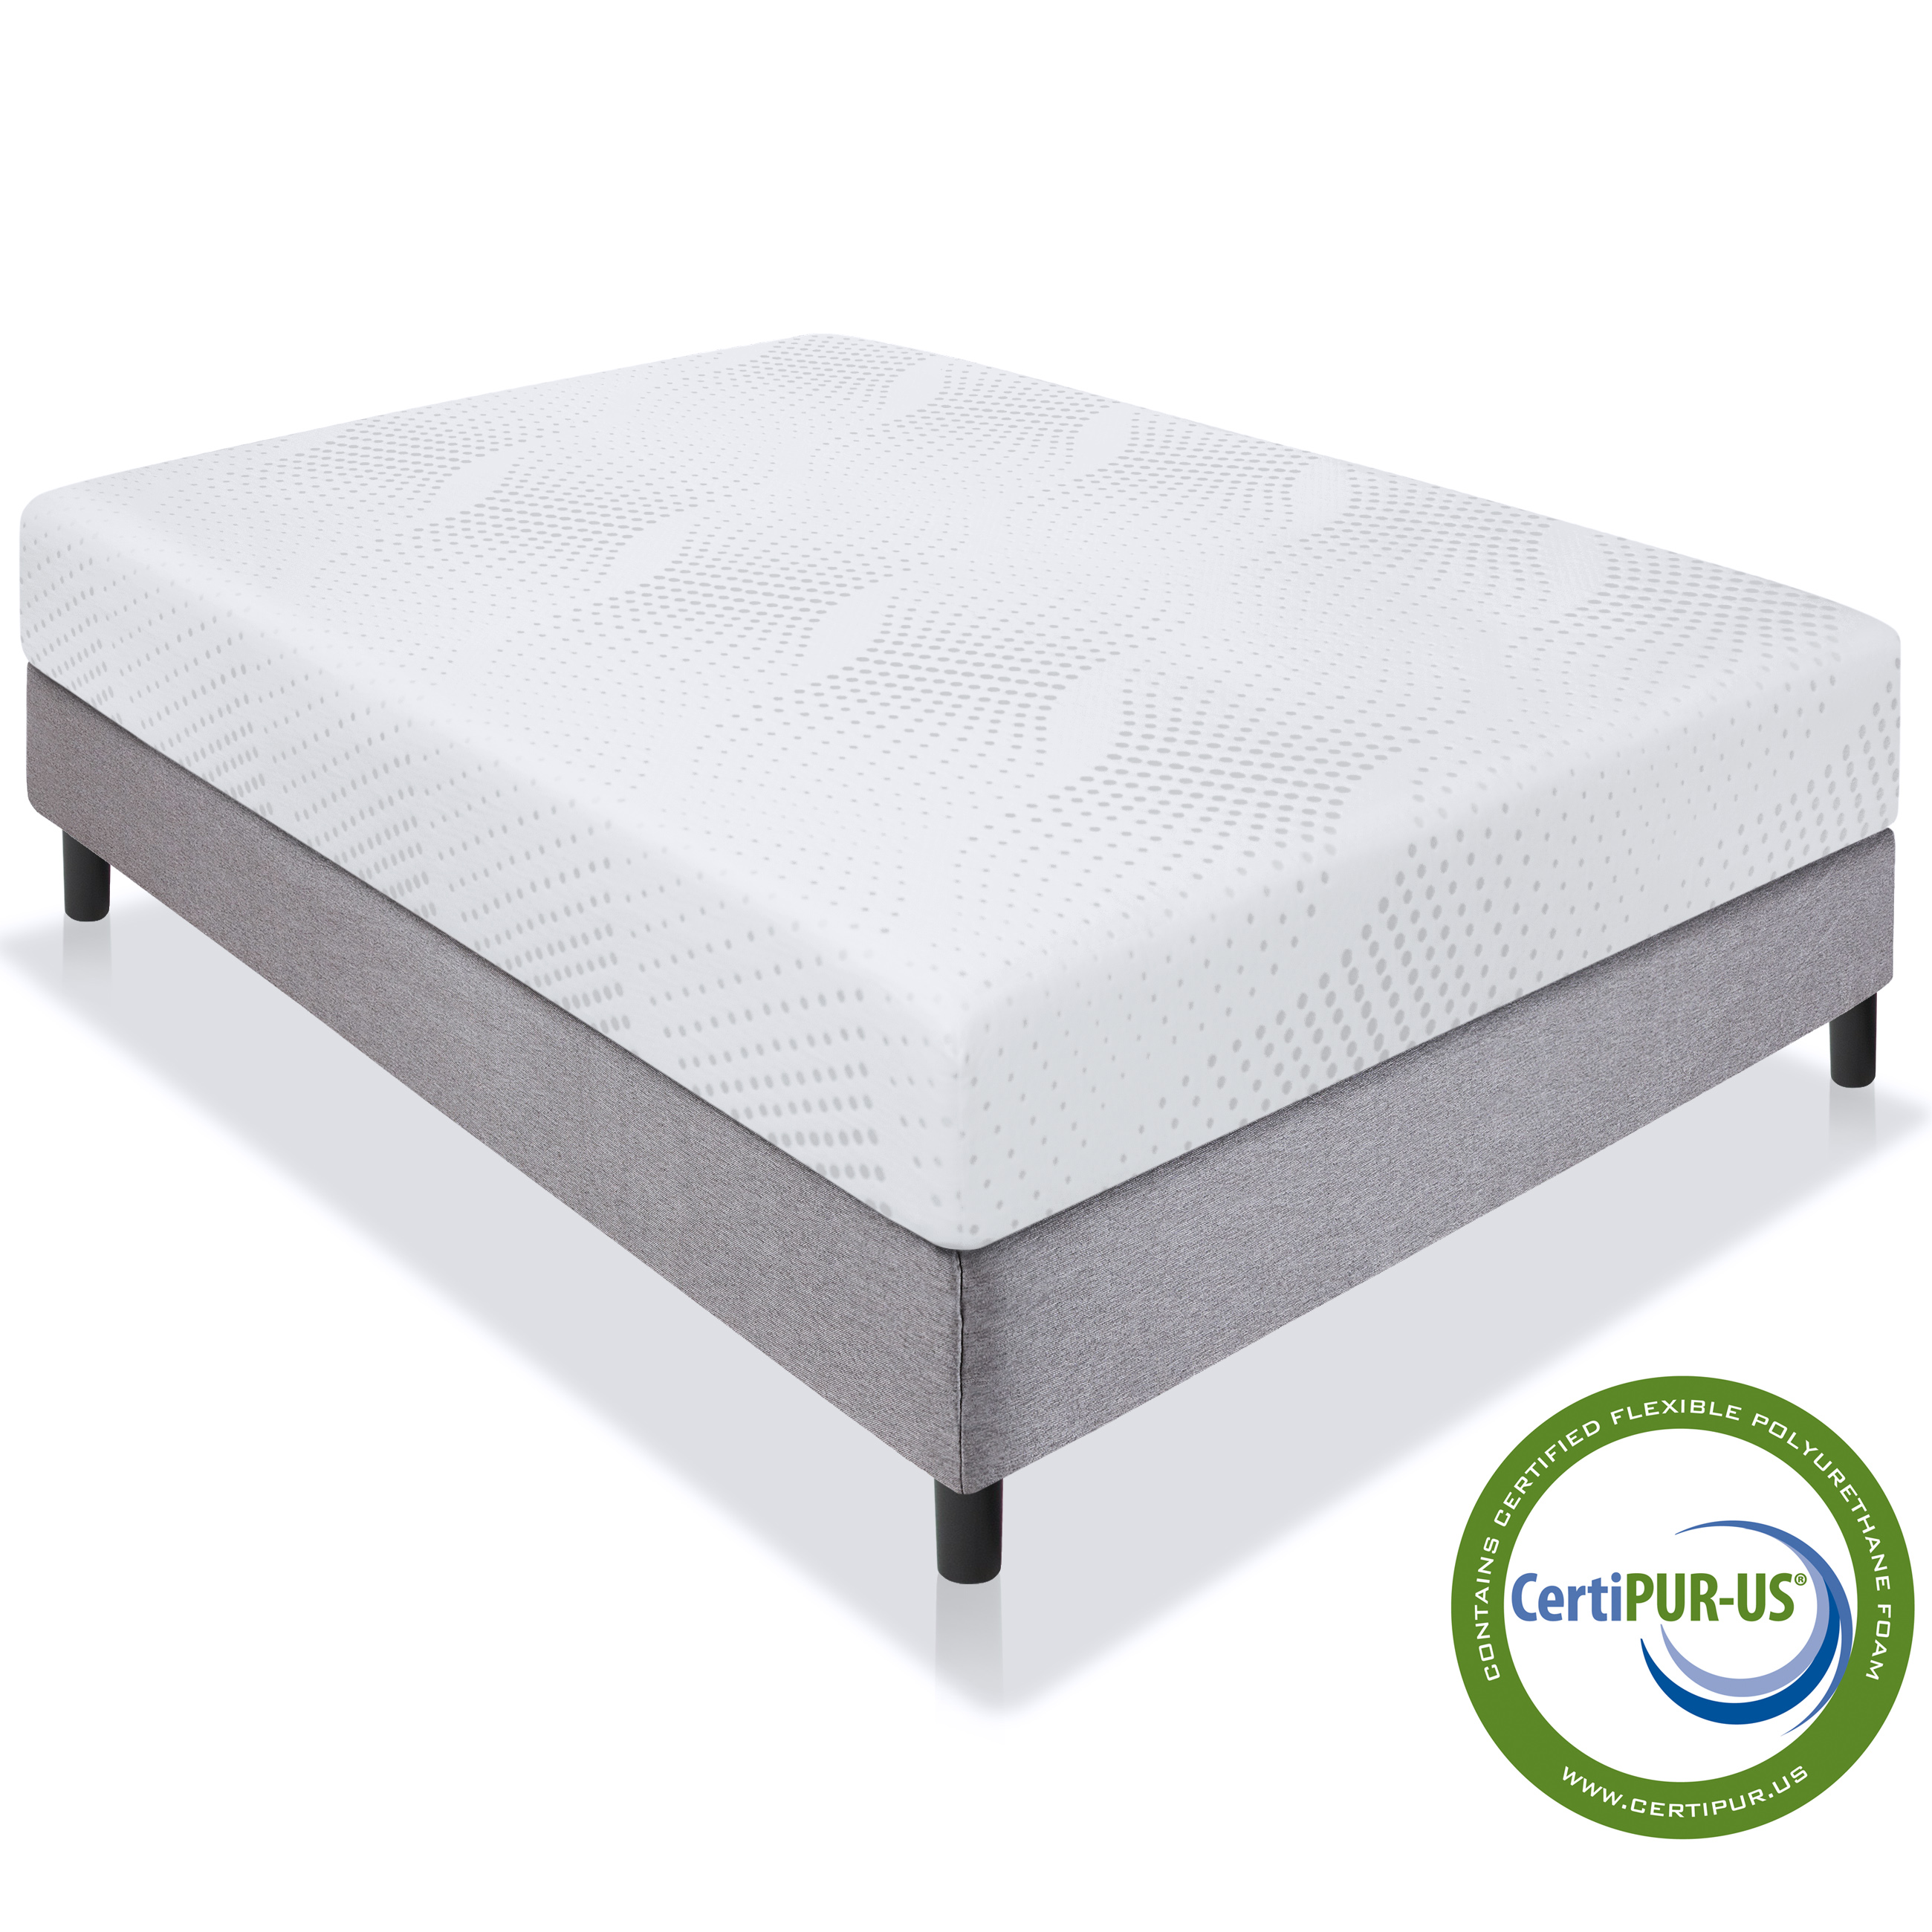 Peachy Best Choice Products 10 Dual Layered Medium Firm Memory Foam Mattress W Open Cell Cooling Certipur Us Certified Foam Removable Cover Queen Andrewgaddart Wooden Chair Designs For Living Room Andrewgaddartcom